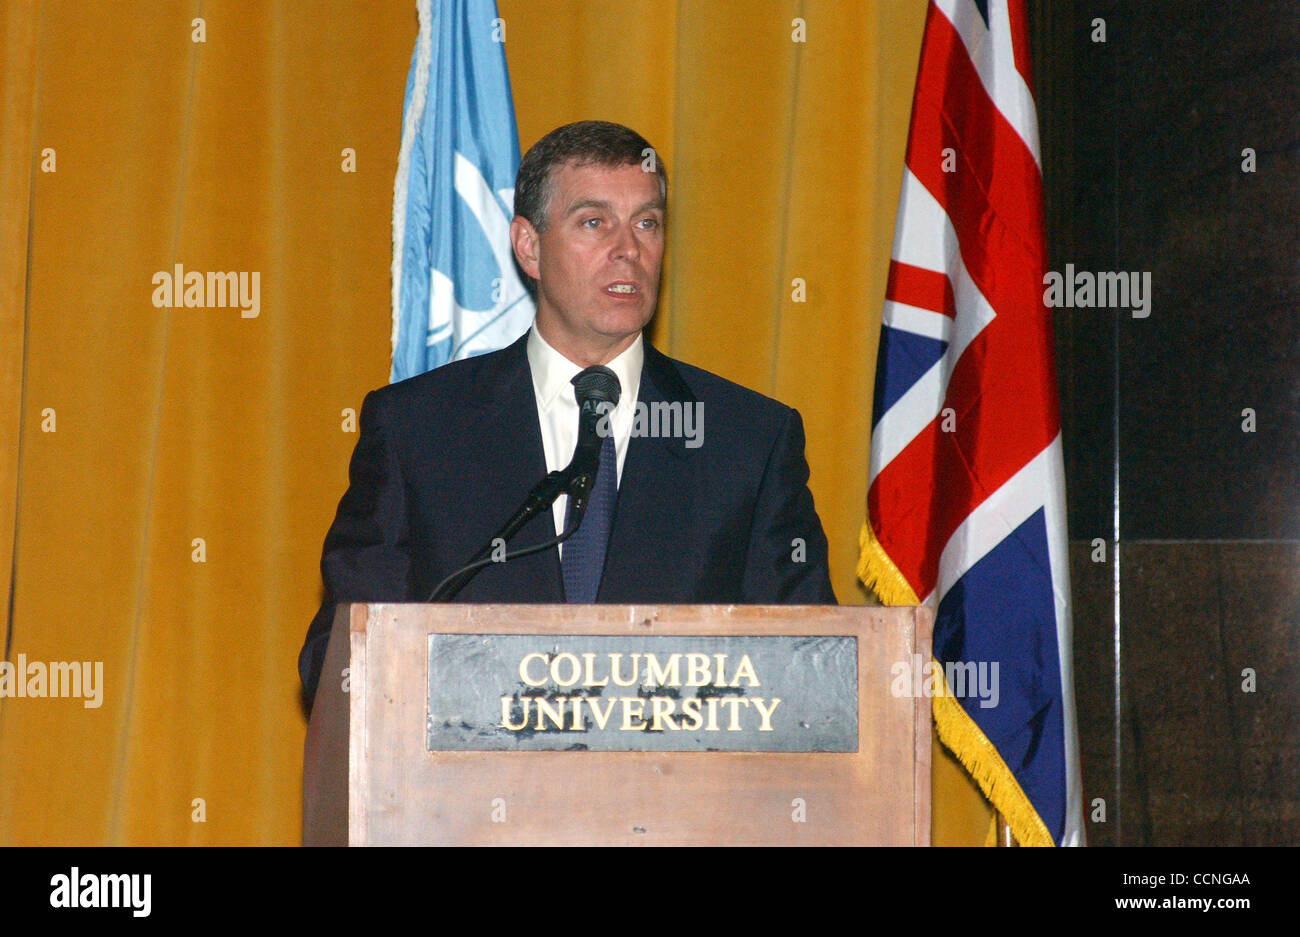 Oct 11, 2004; New York, NY, USA; PRINCE ANDREW gave a speach at Columbia University's 250th anniversary dinner. - Stock Image